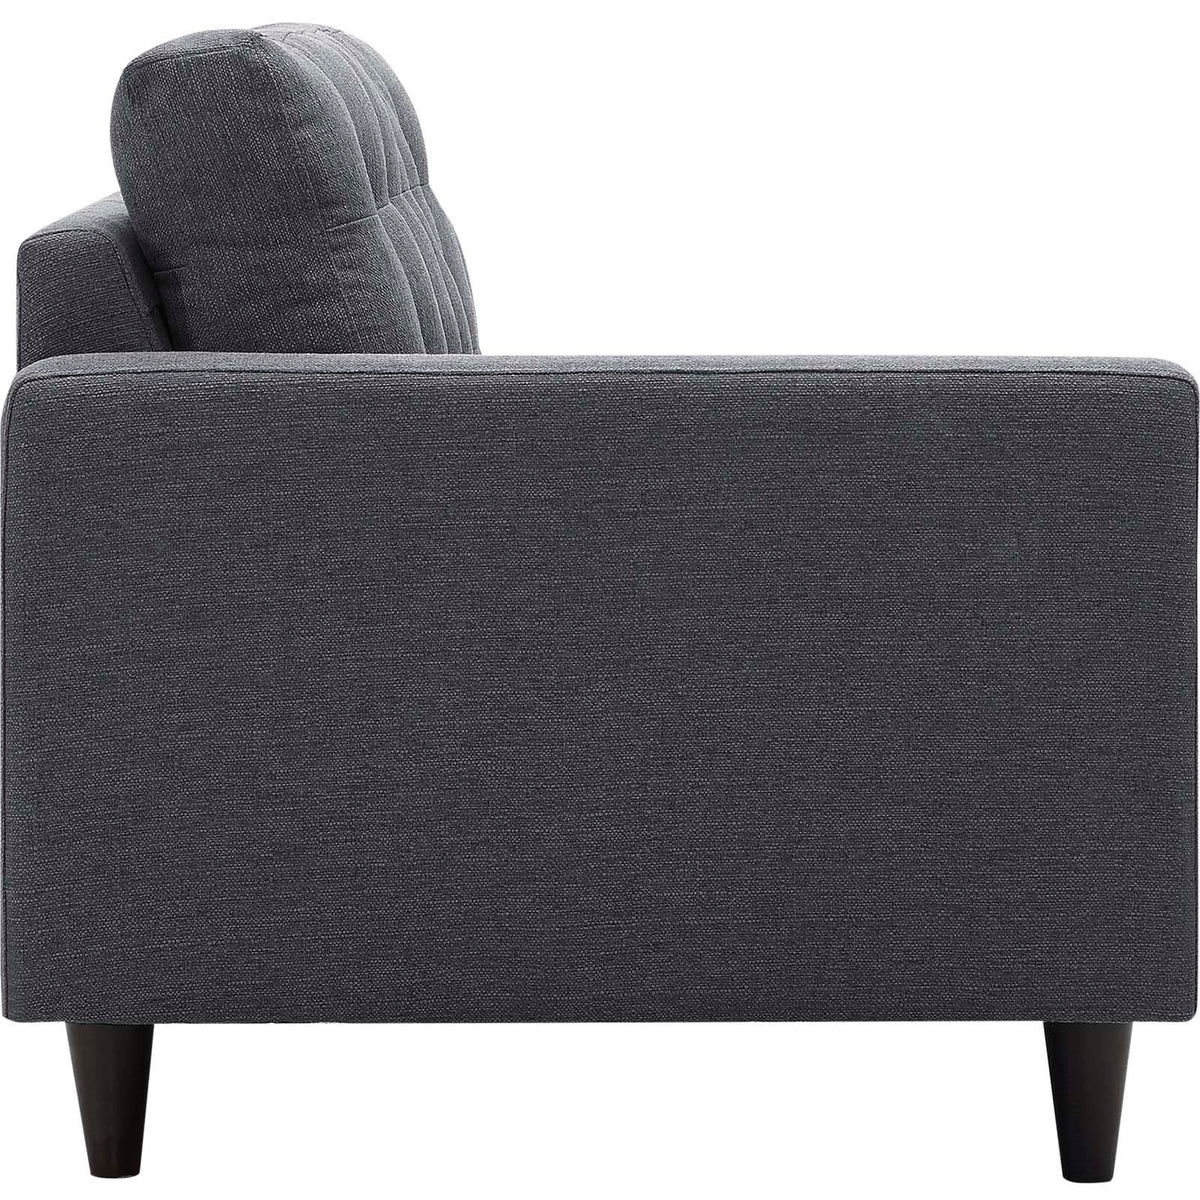 Tati 2 Piece Upholstered Sectional Gray